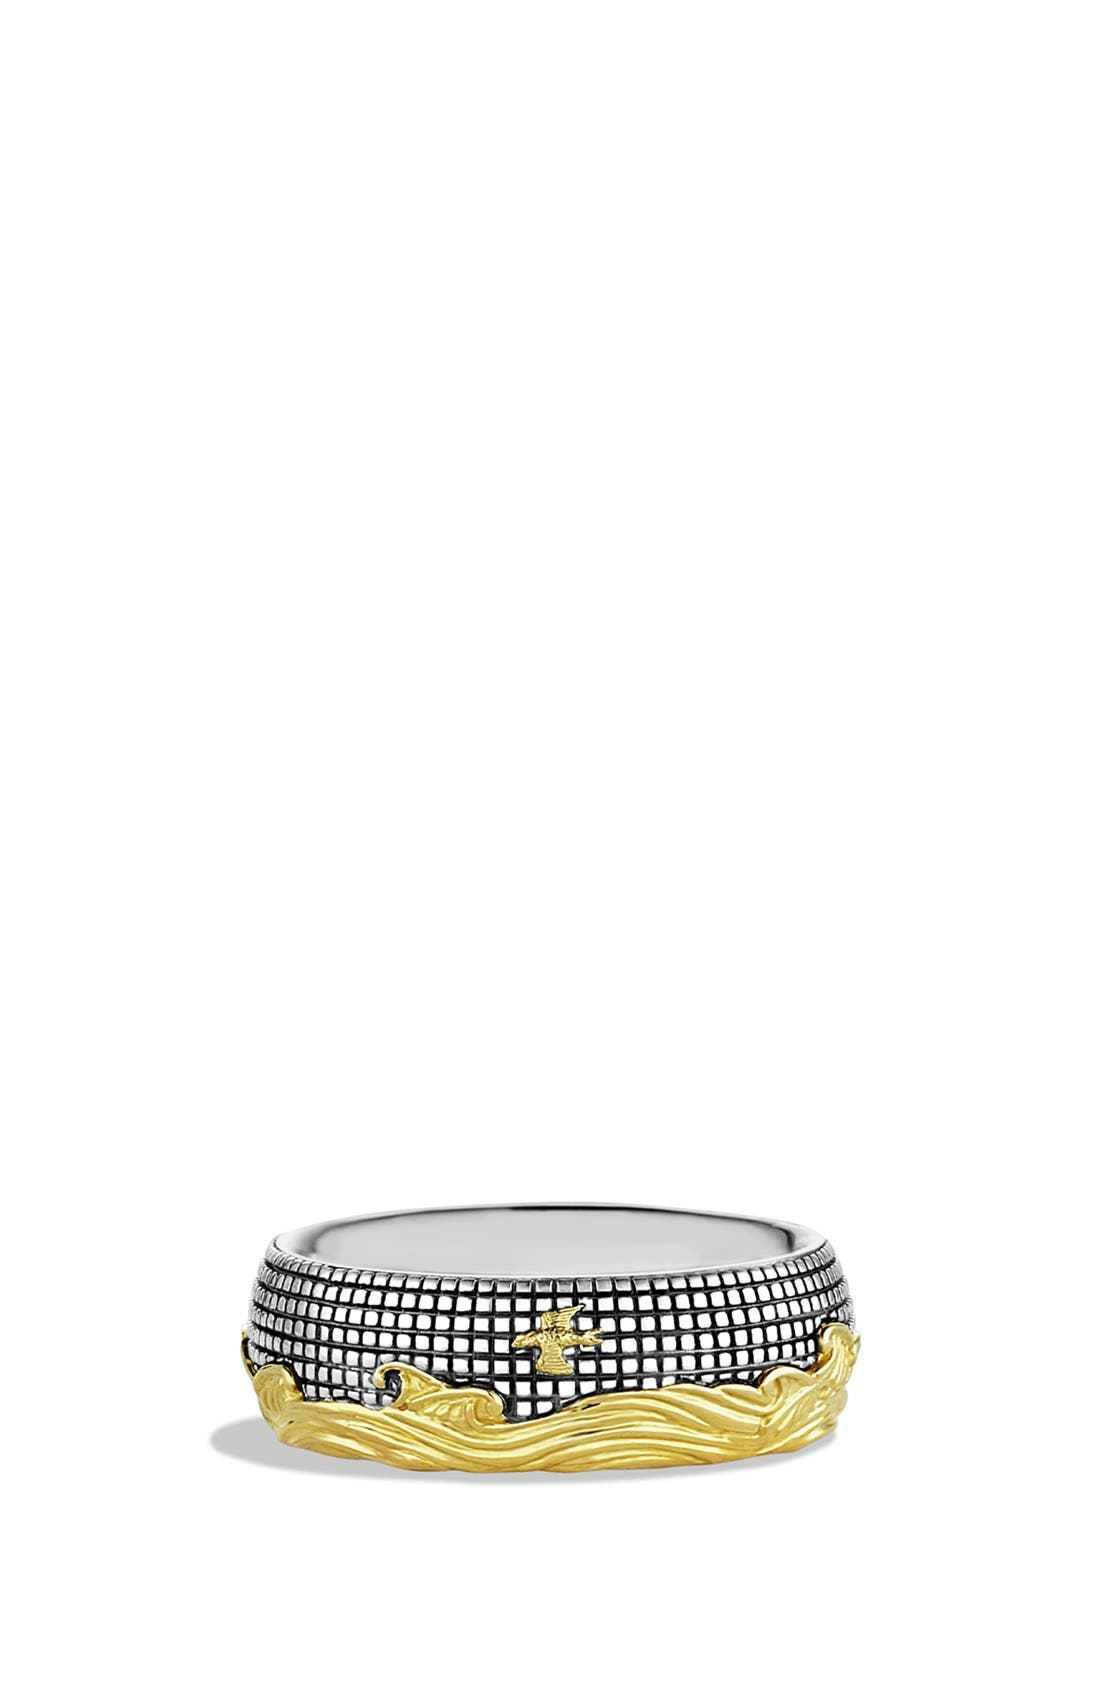 Main Image - David Yurman 'Waves' Band Ring with Gold